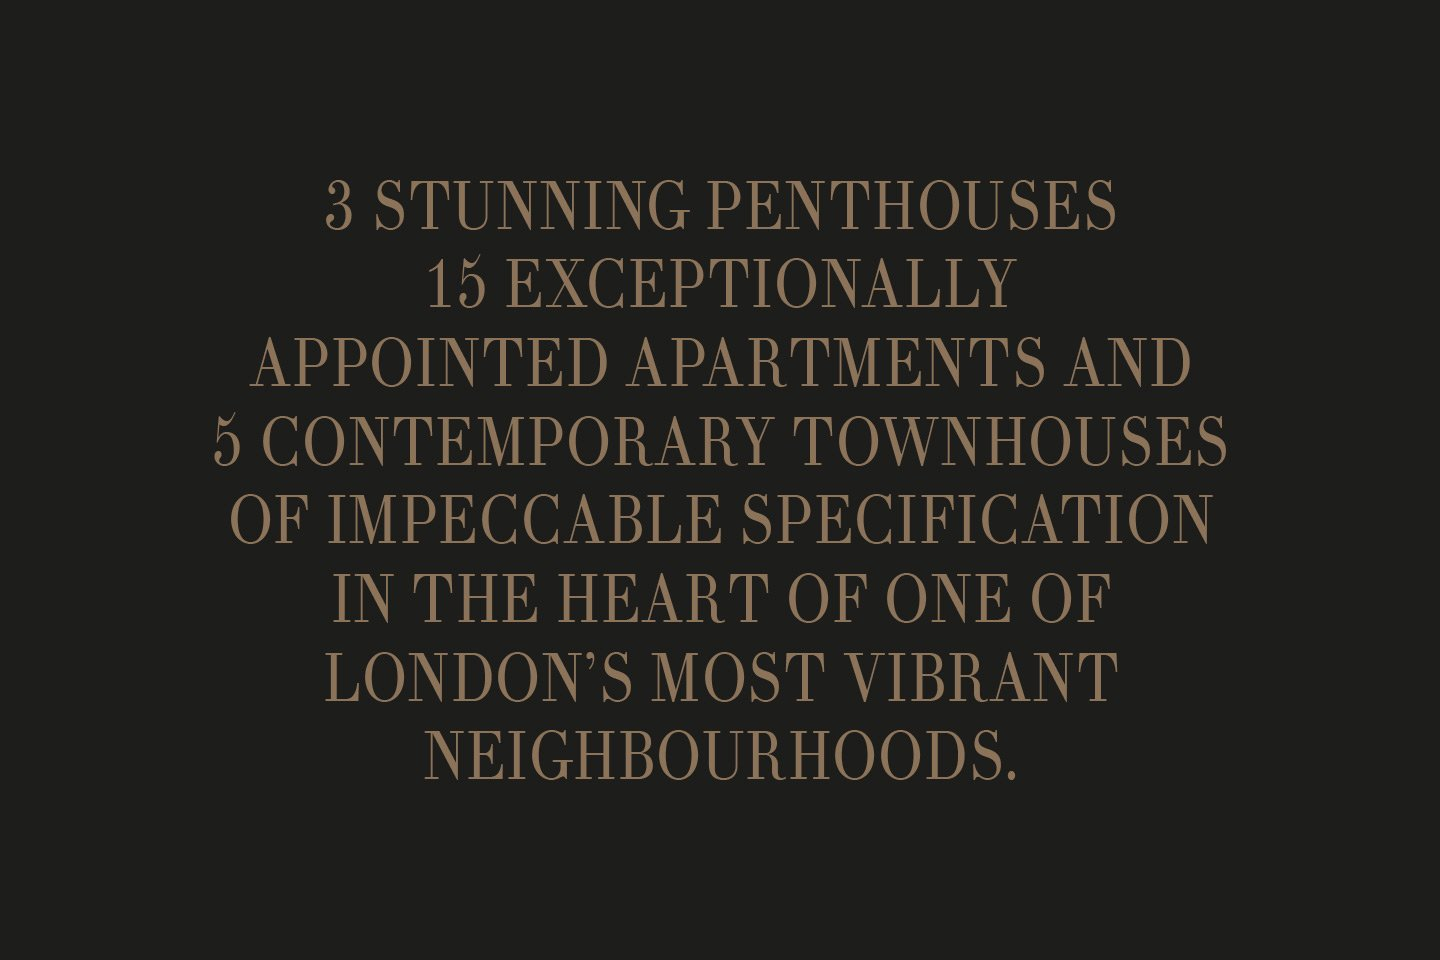 The W1 London Quote From Brochure